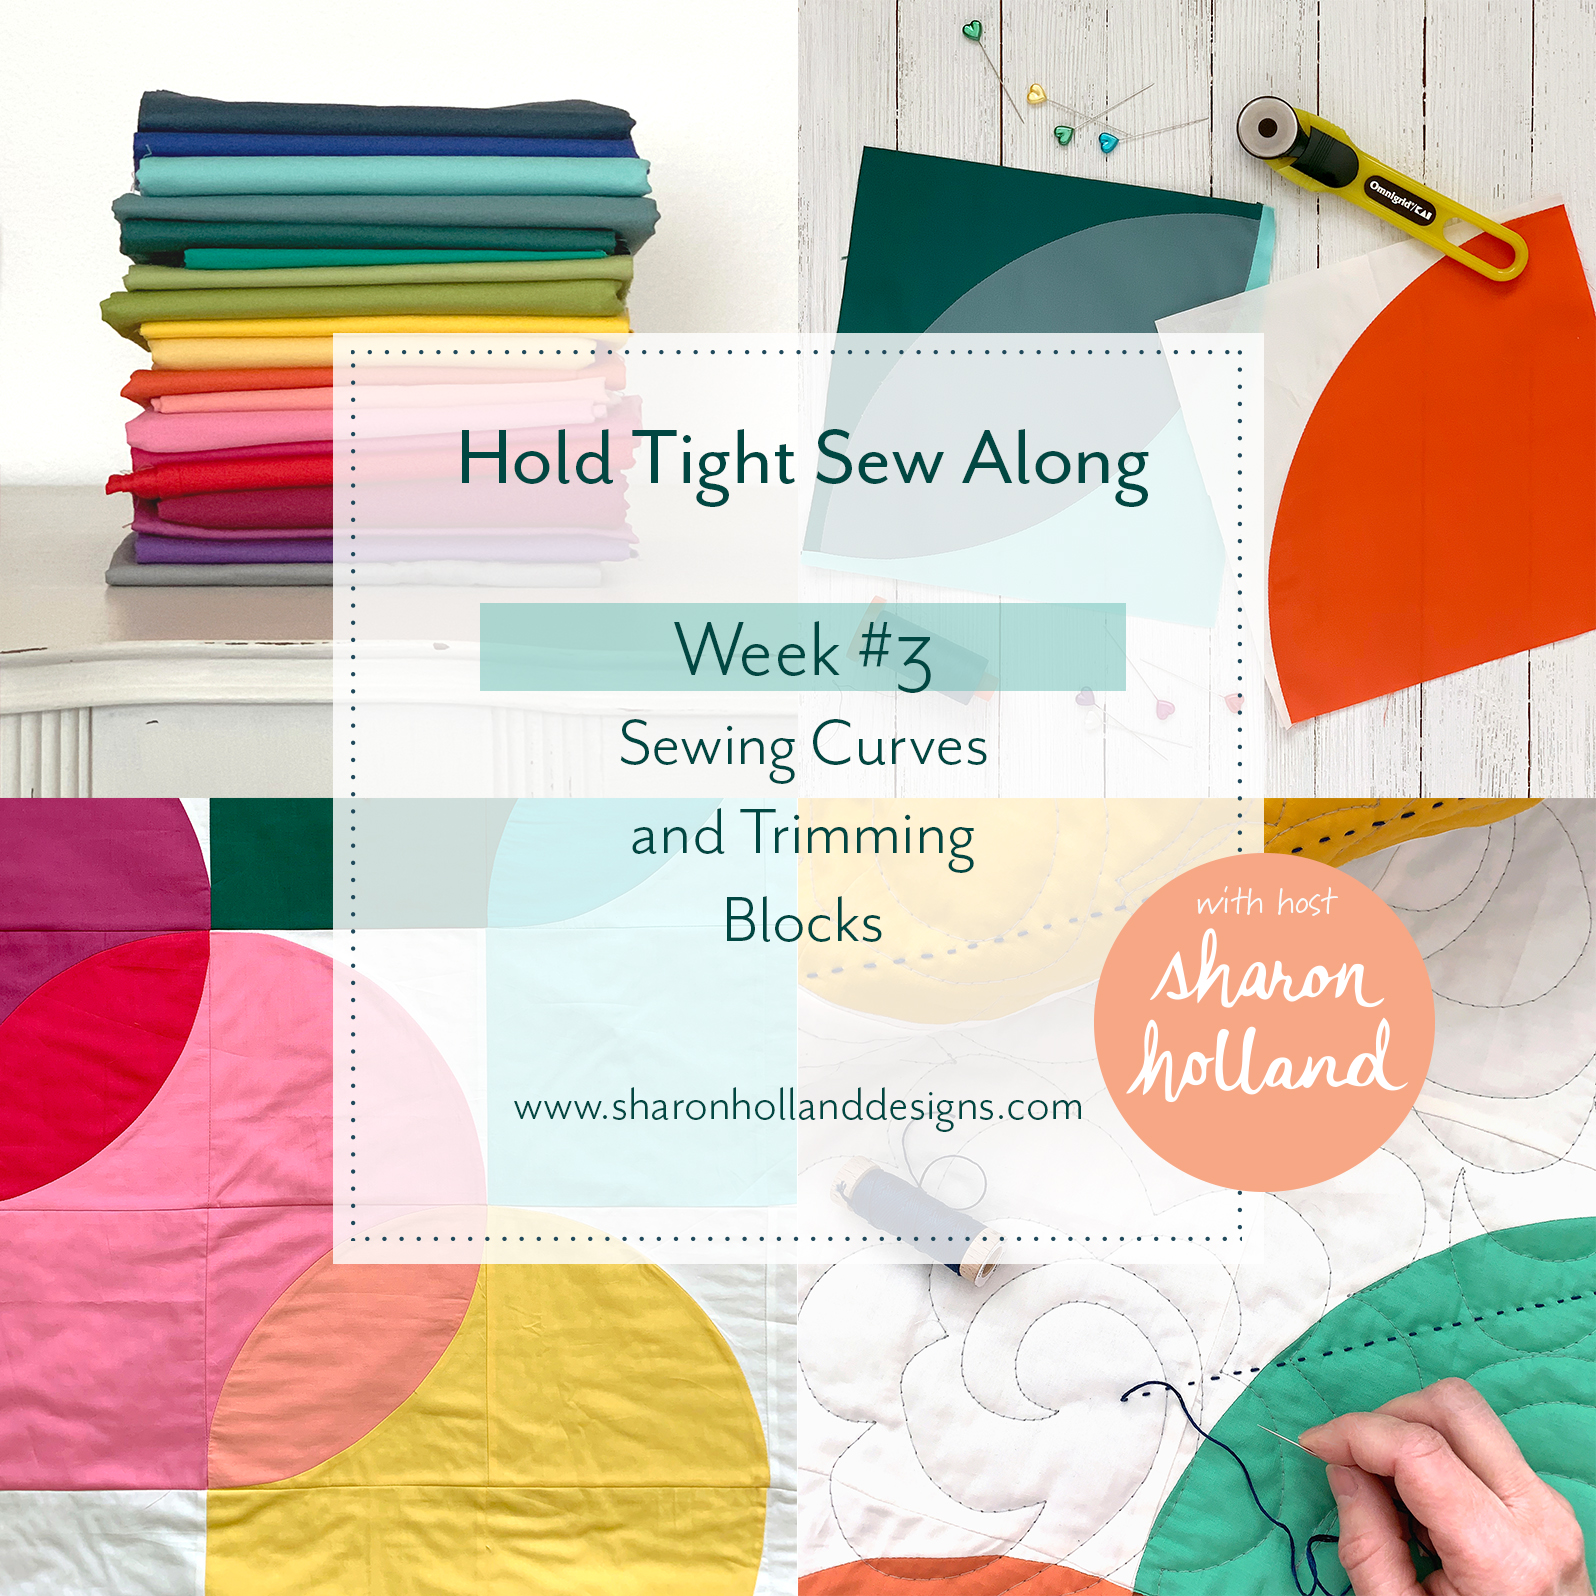 Hold Tight Sew Along 3A Sq cover.jpg